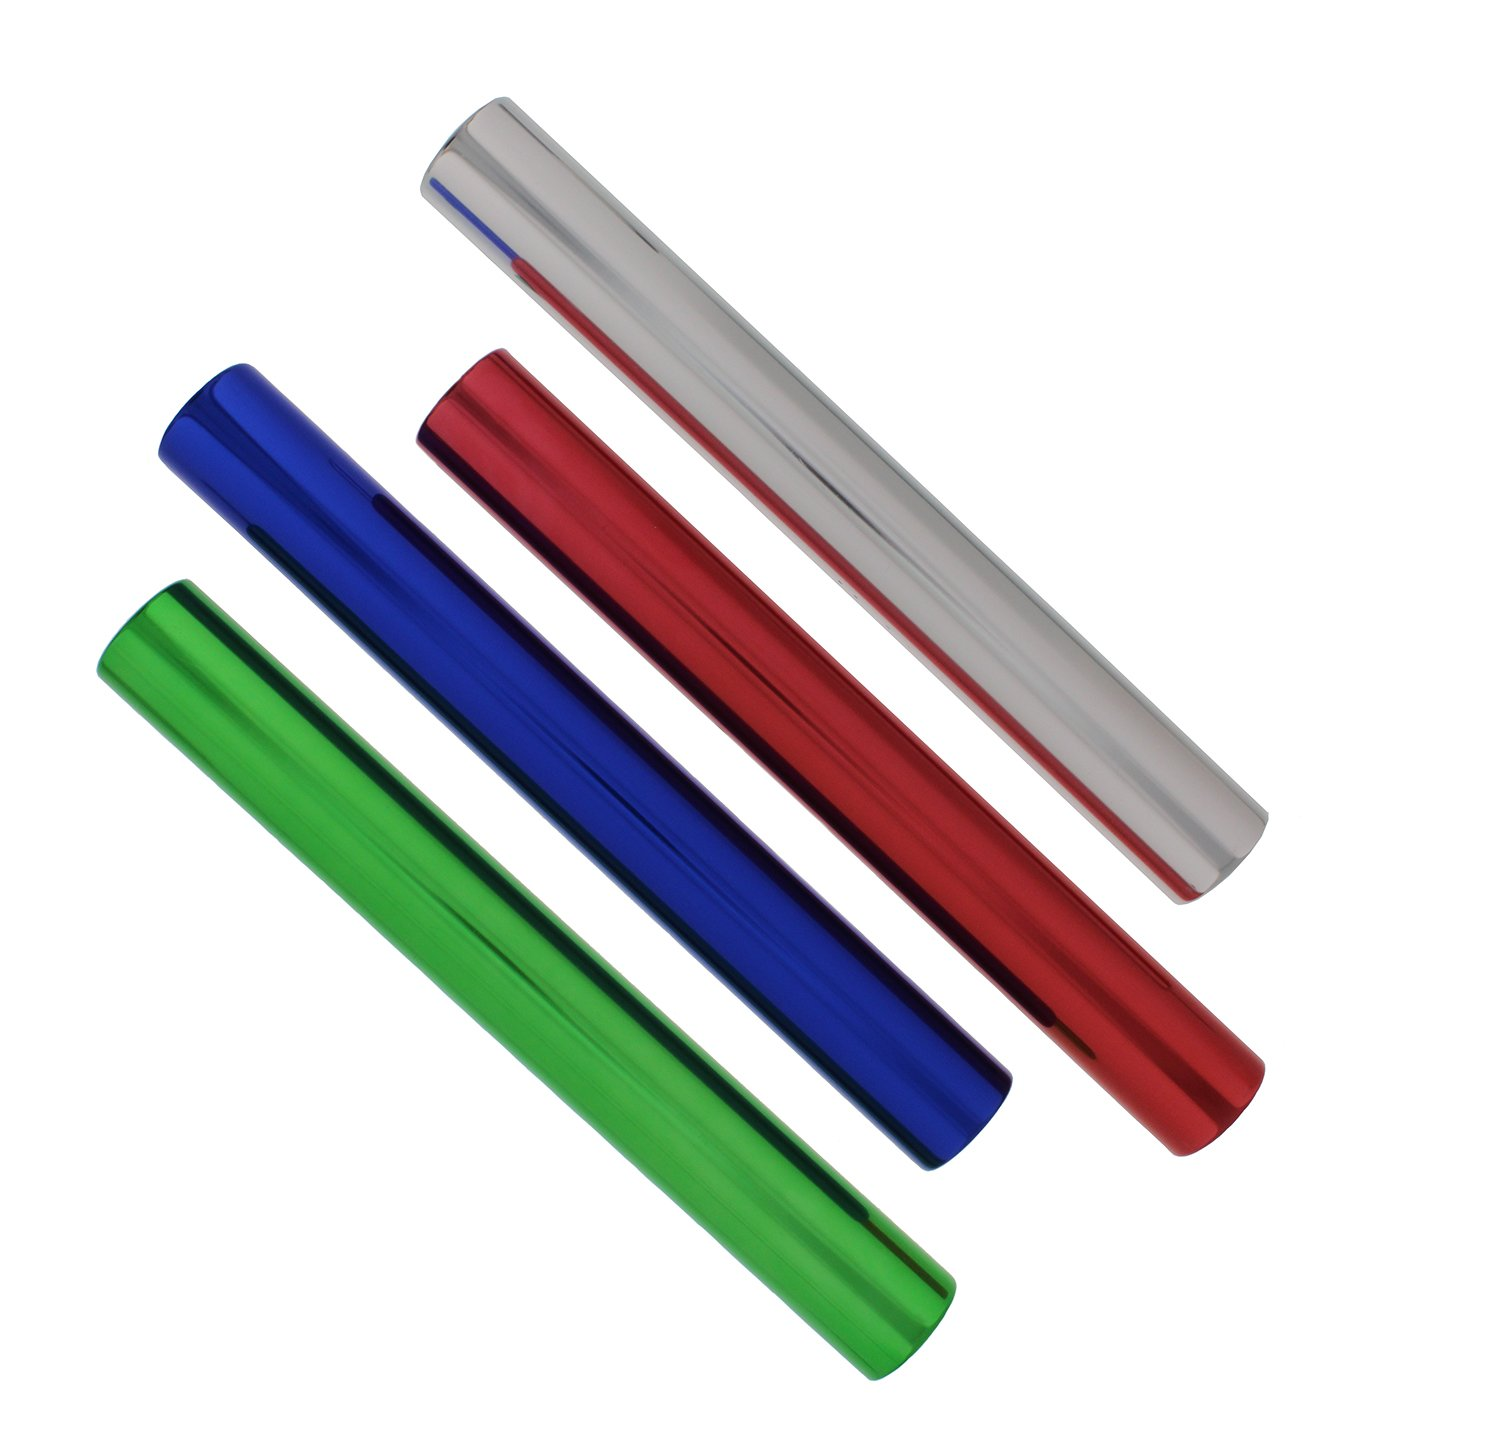 """Get Out! Aluminum Relay Running Baton 4-Pack – 12"""" Inch Metal Baton Sticks in Red, Blue, Green, Silver for Track & Field"""